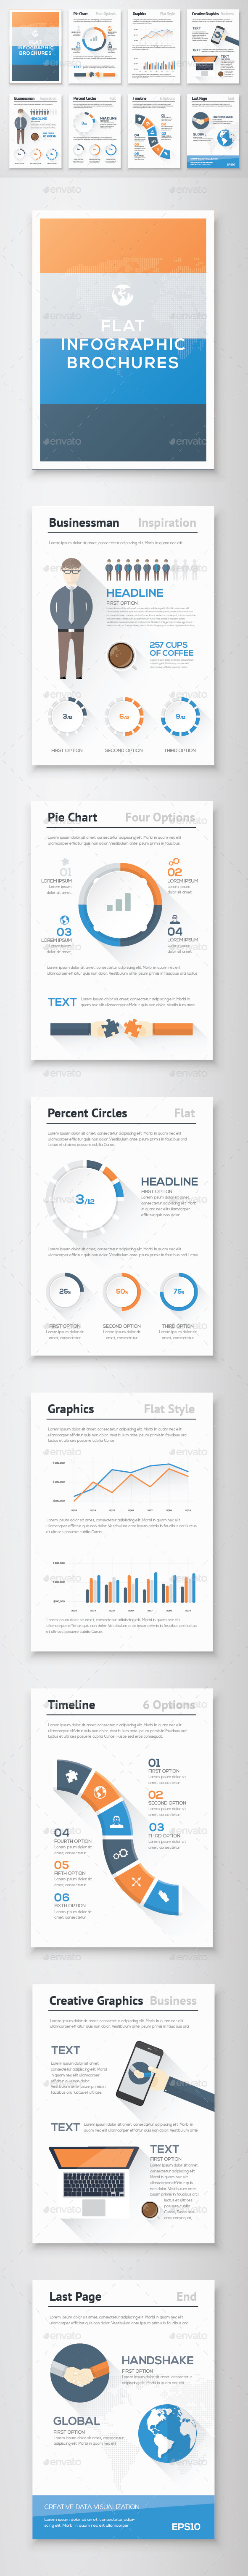 GraphicRiver Infographic Brochure Vector Elements Kit 13 11139410